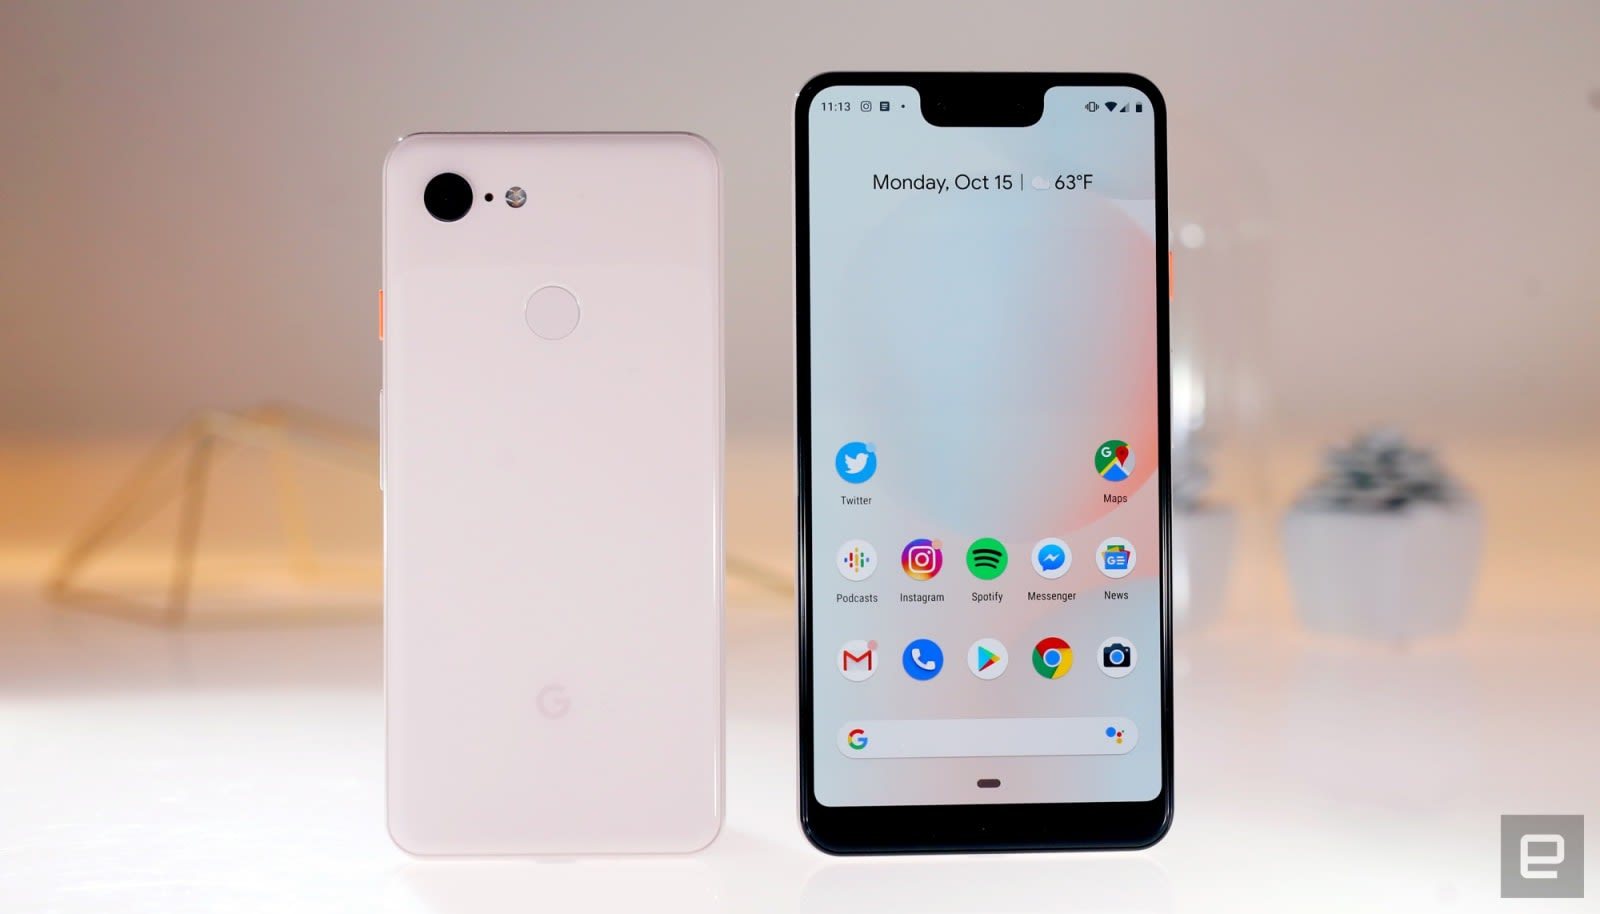 Pixel 3 and 3 XL review: Google's hardware takes a backseat